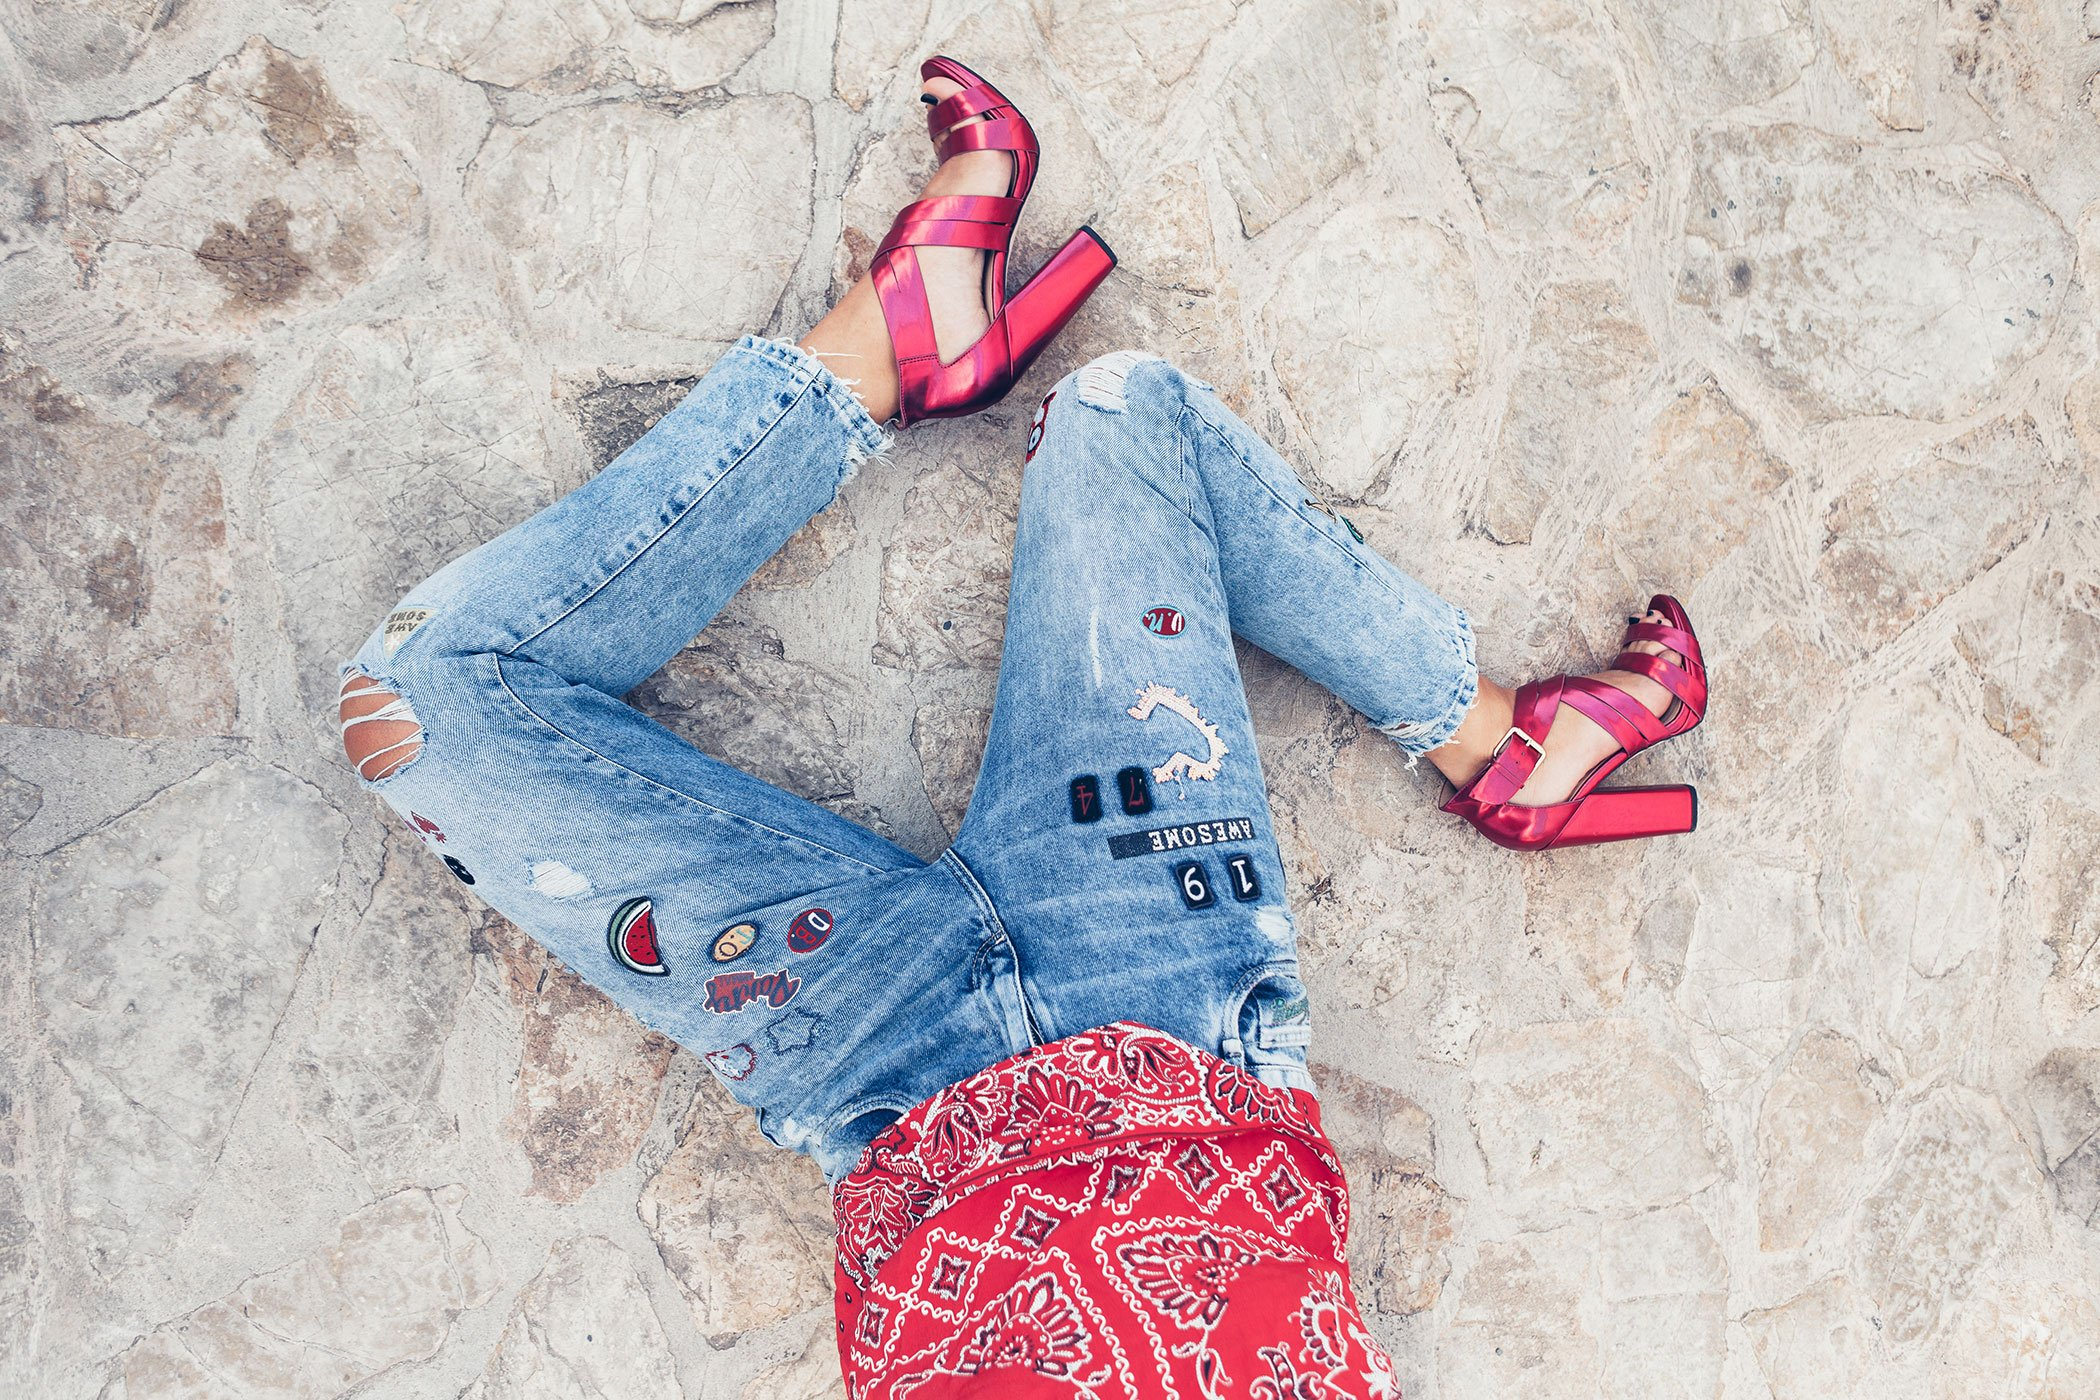 mikuta-red-and-jeans-4